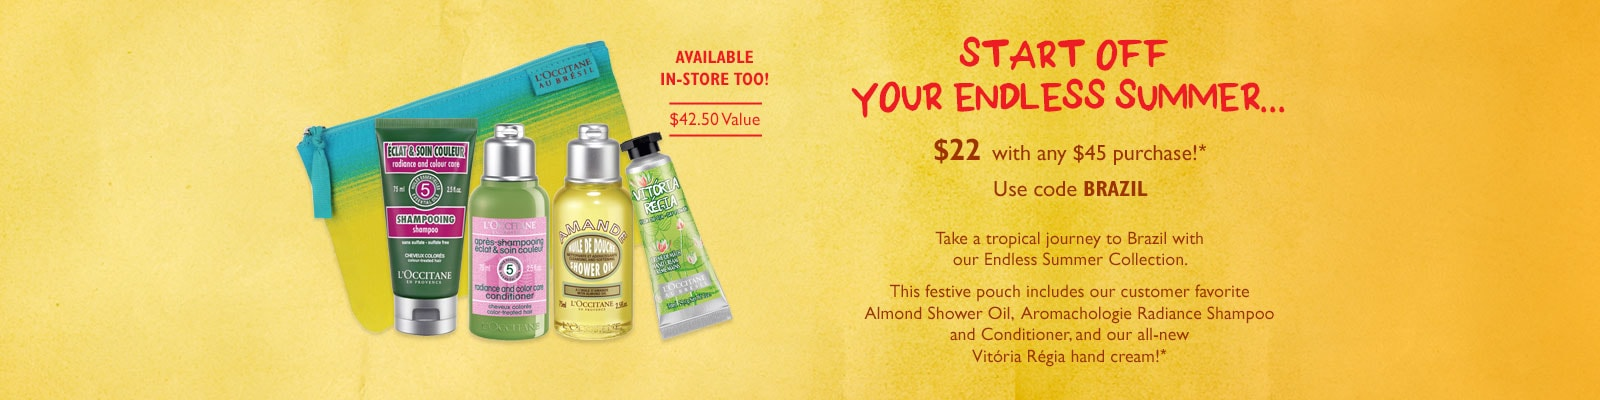 Start off your endless summer $22 with any $45 purchase!* Use code BRAZIL